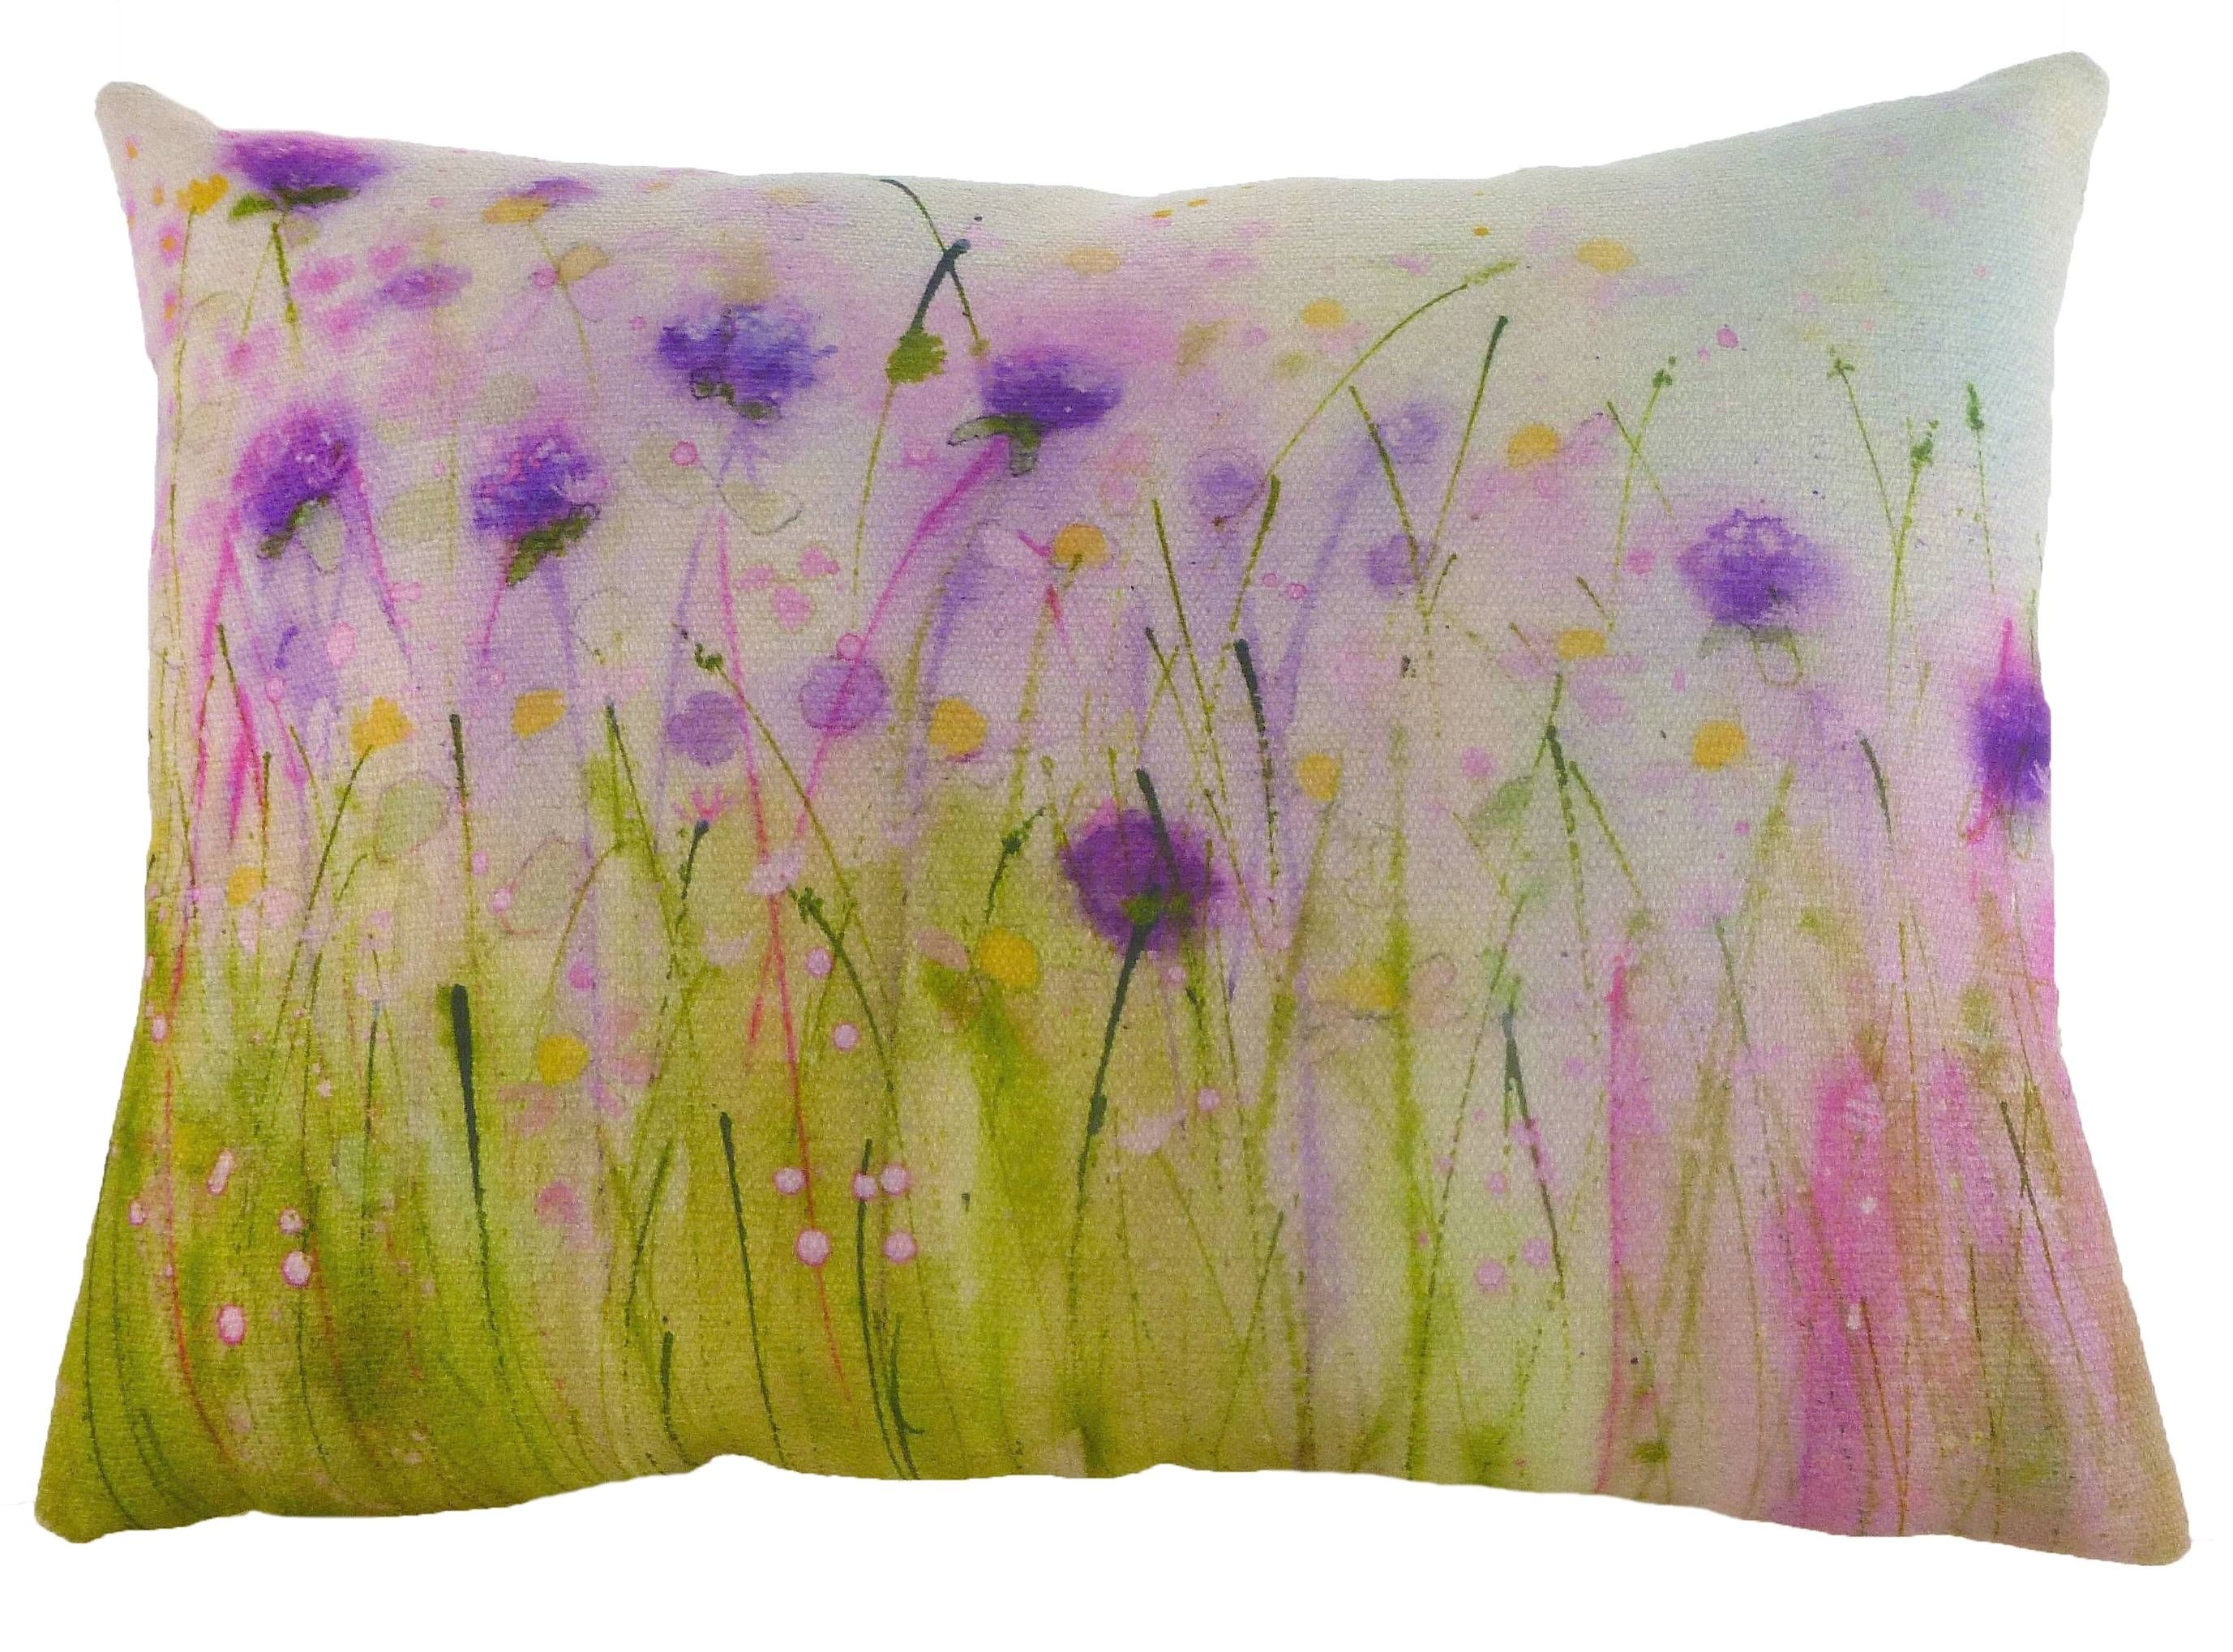 """I paint nature as I see it, with a sprinkling of emotion"""" - The Sue Fenlon range from @evanslichfield #AutumnFair15"""